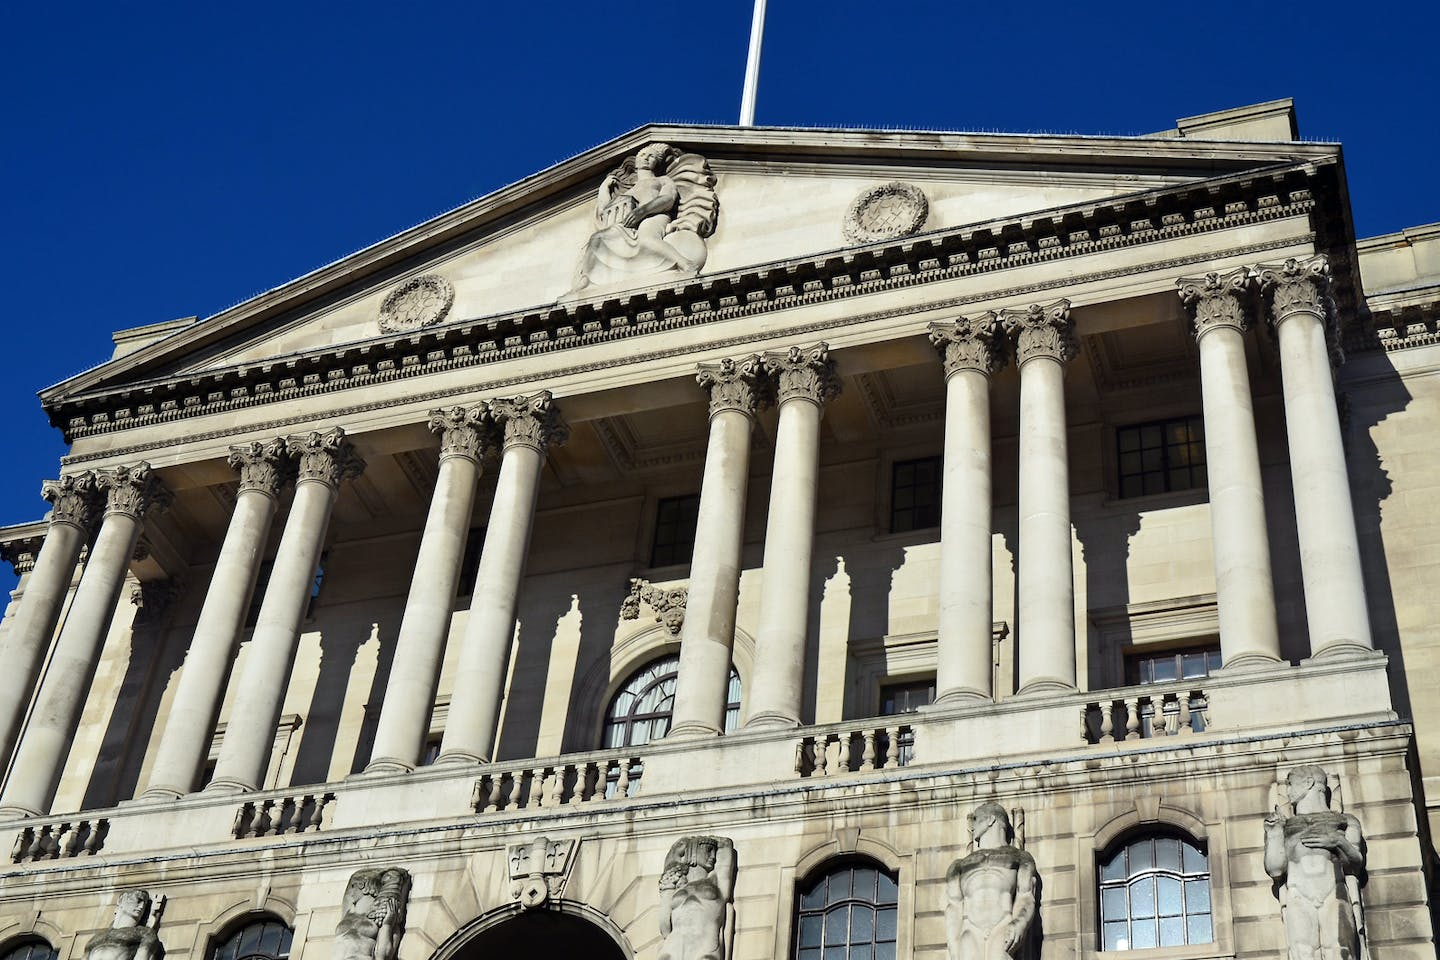 Facade of Bank of England